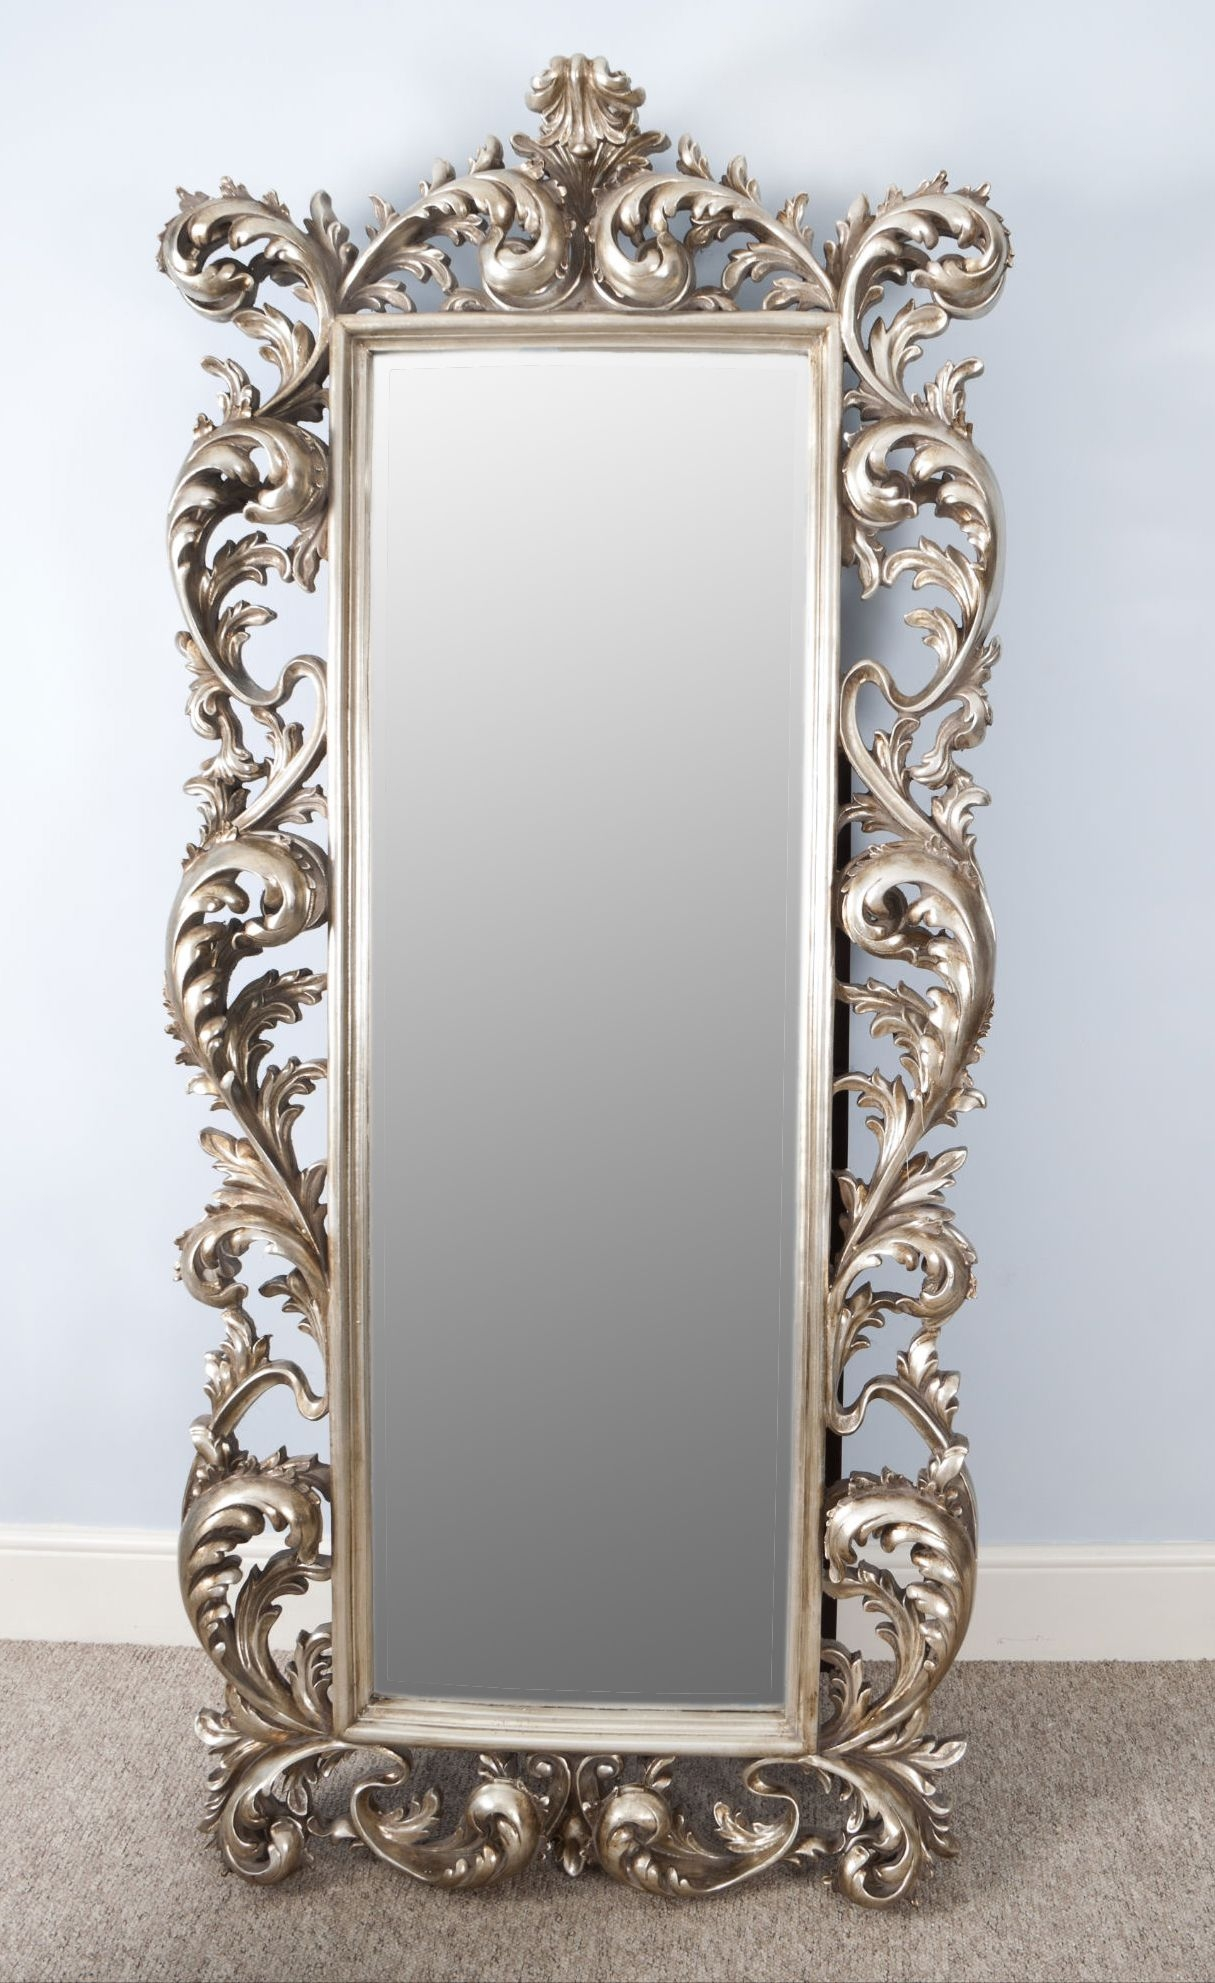 Classic Impression On Antique Wall Mirrors Vwho In Large Antique Silver Mirror (Image 4 of 15)